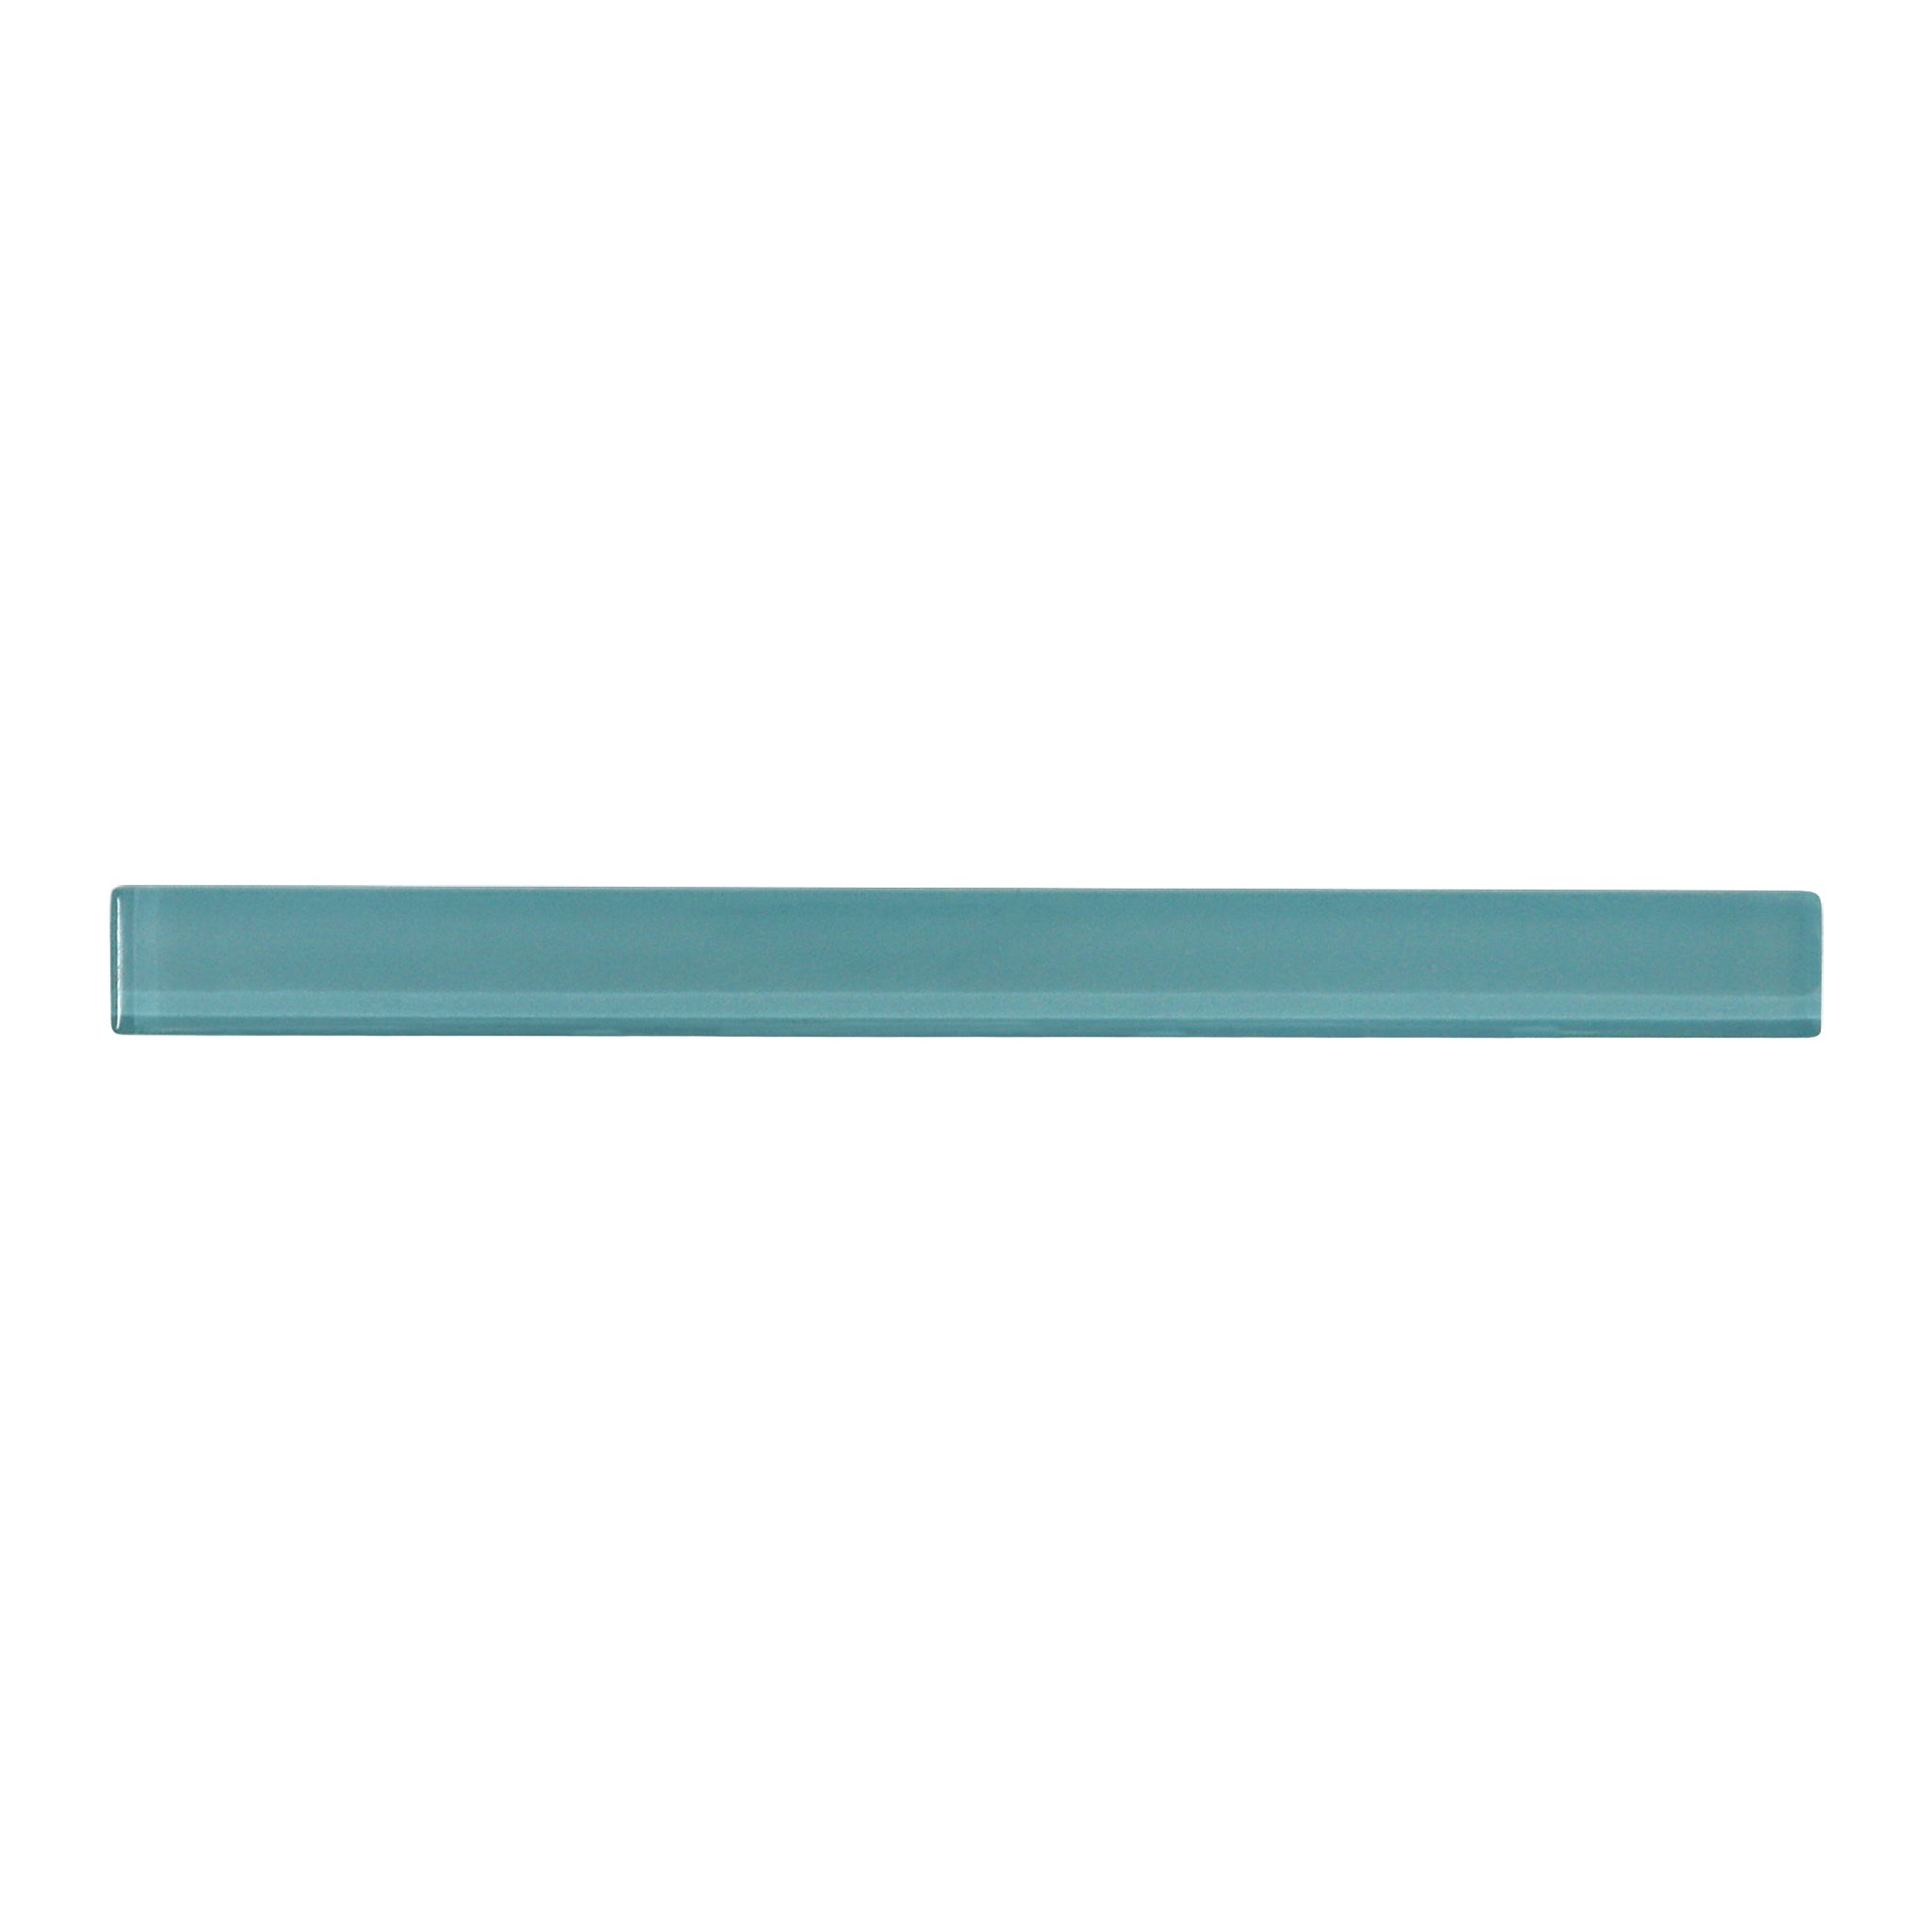 AZURE, FLAT TRIM - Island, Glass Series